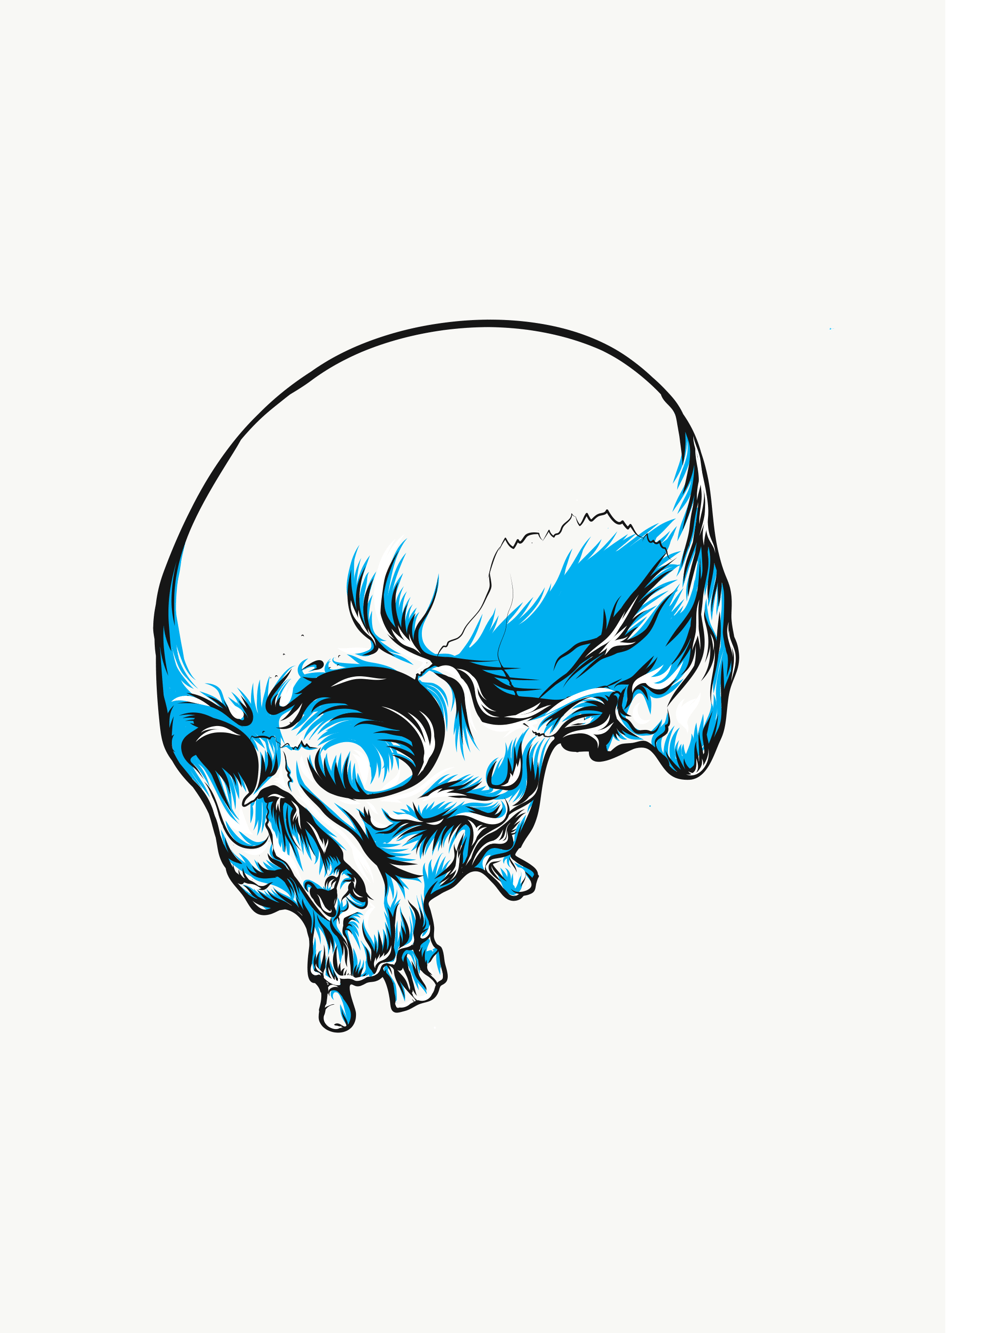 Skull - image 3 - student project